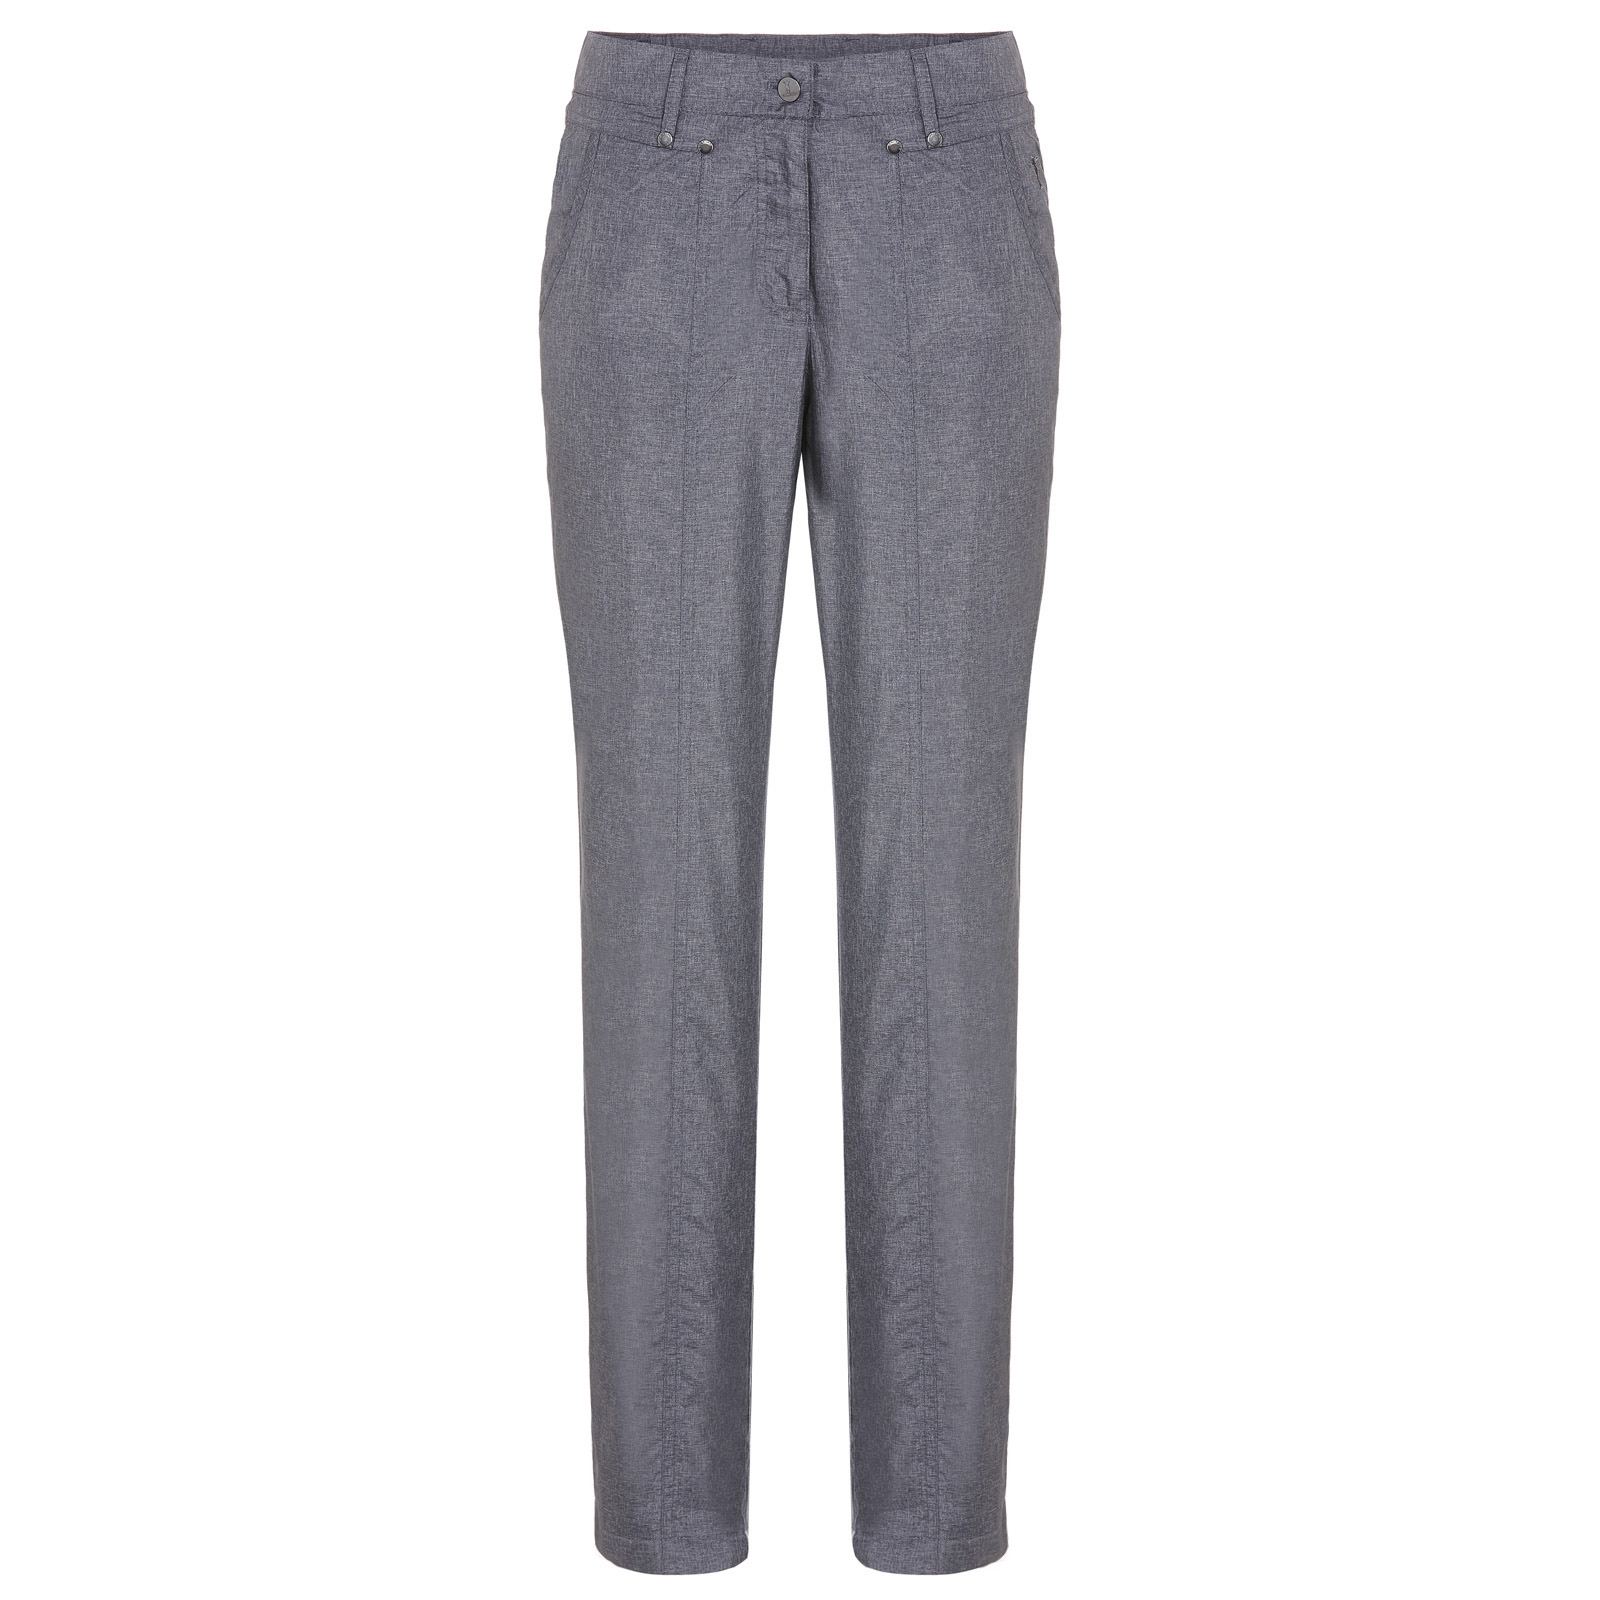 Thermal trousers in jeans look